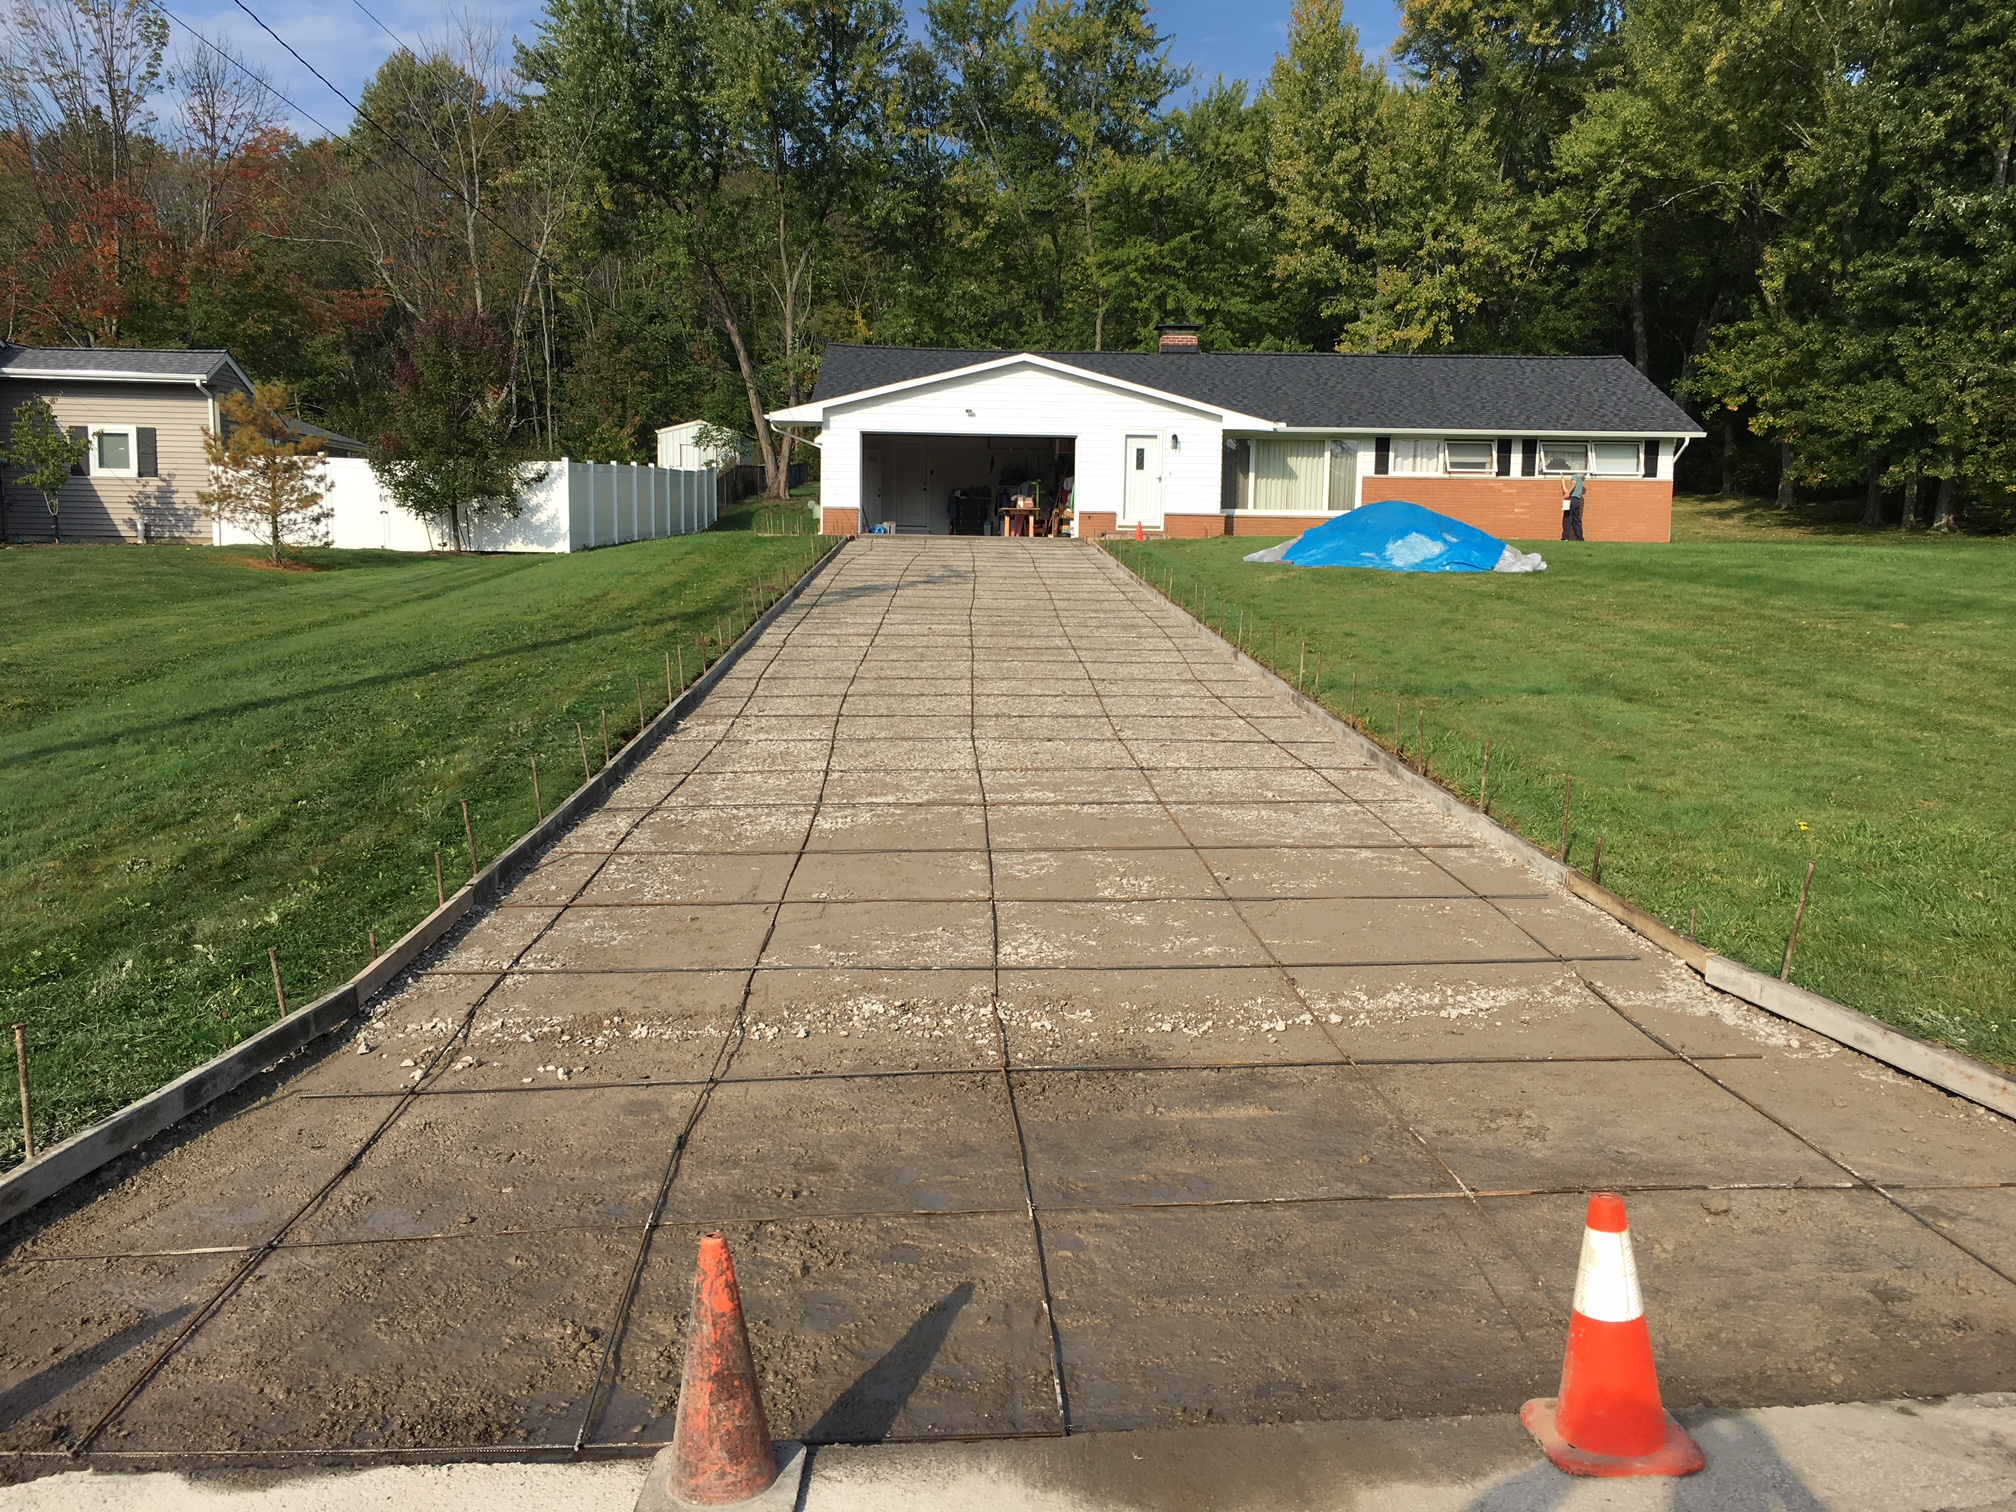 Concrete driveway removed and ready to pour